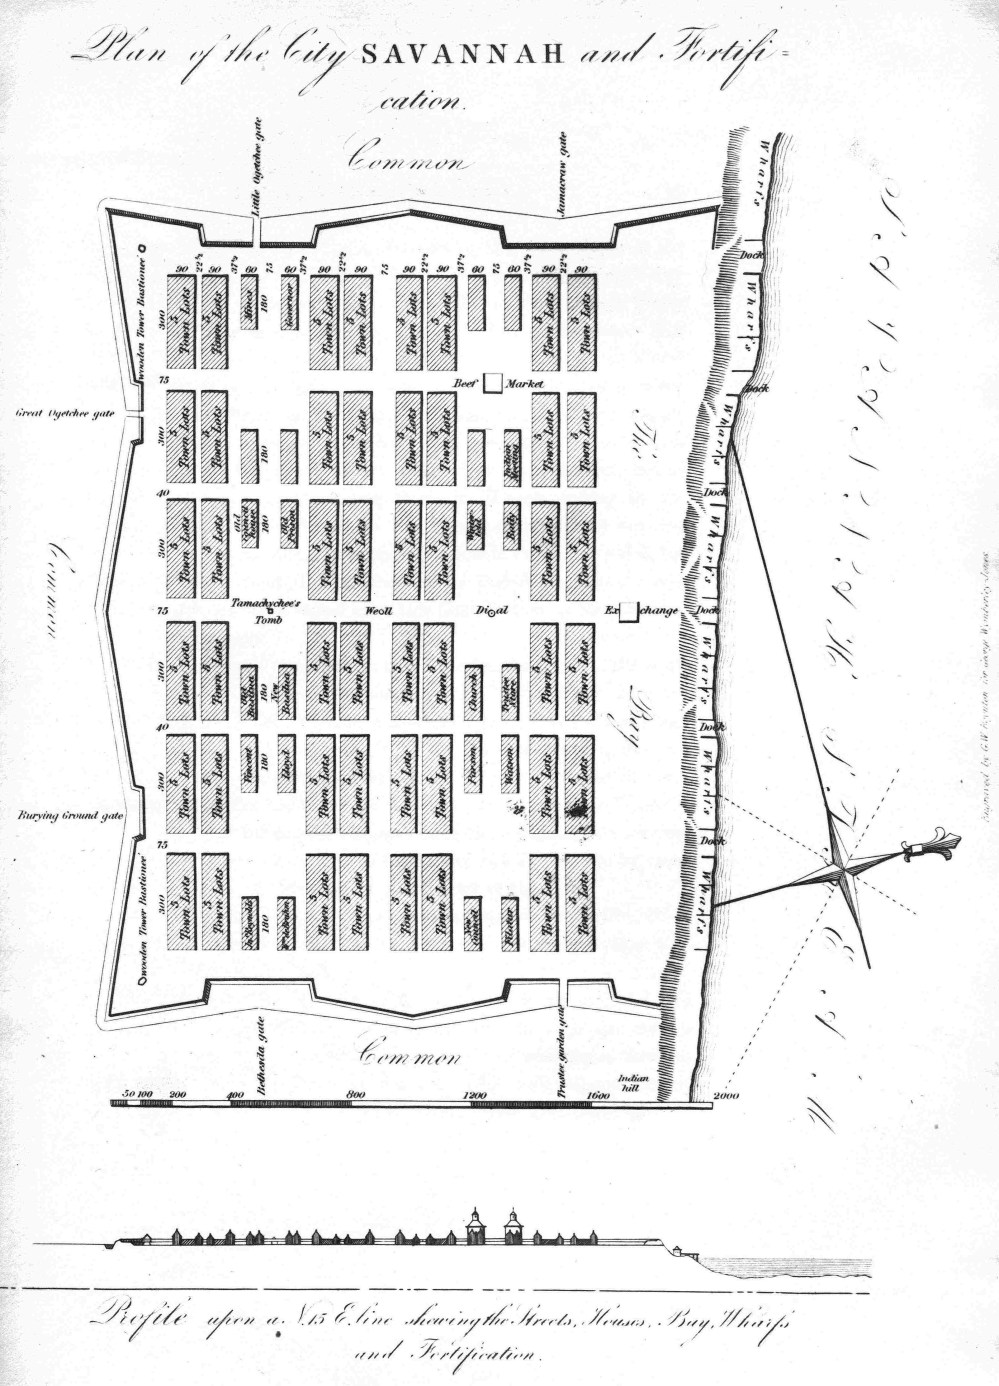 medium resolution of 1753 de brahm plan 1 a history of urban and architectural innovation in savannah dodge ram